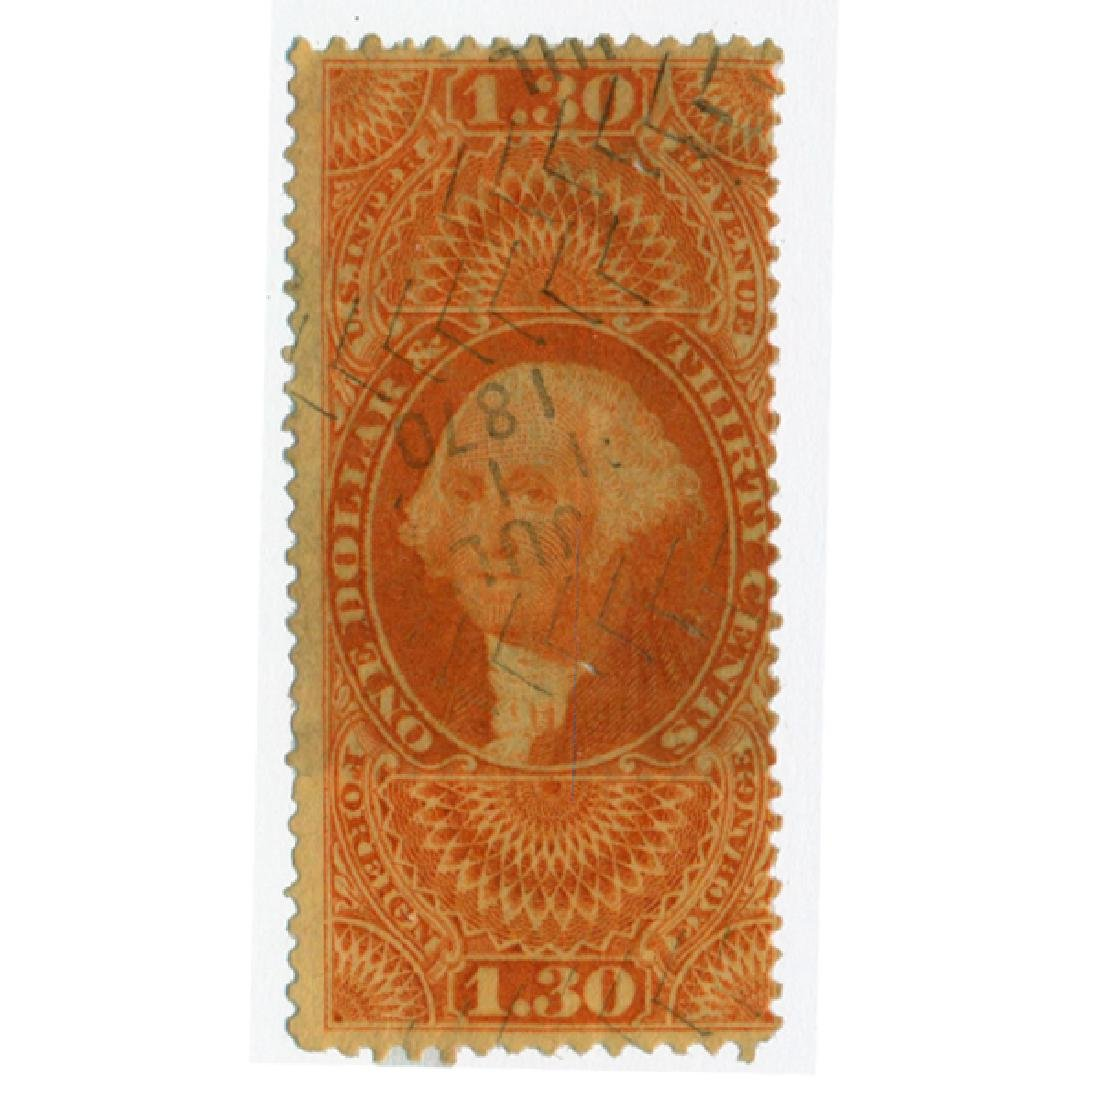 1861 US $1 Revenue Stamp Foreign Exch.